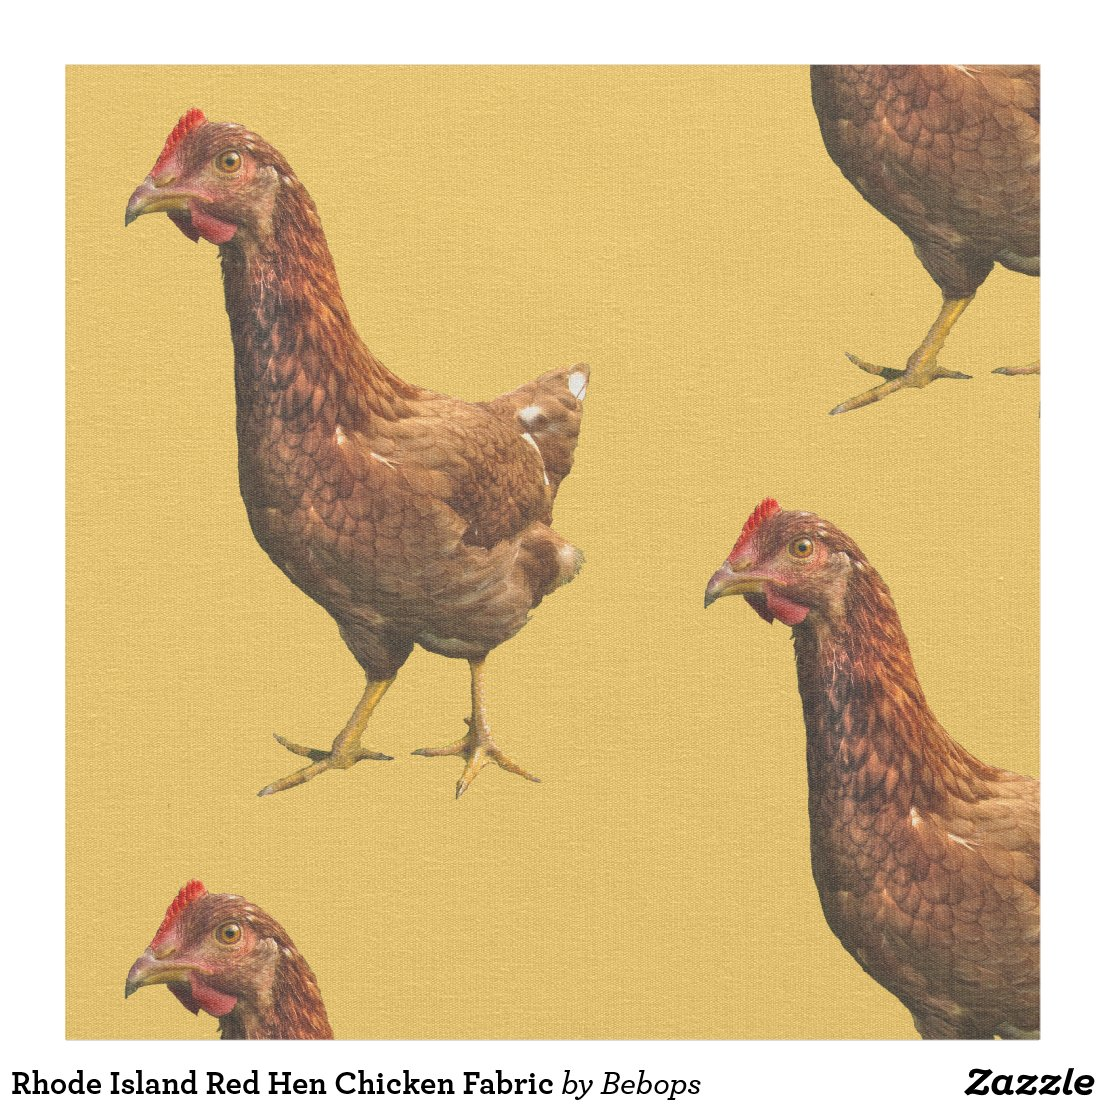 Rhode Island Red Hen Chicken Fabric